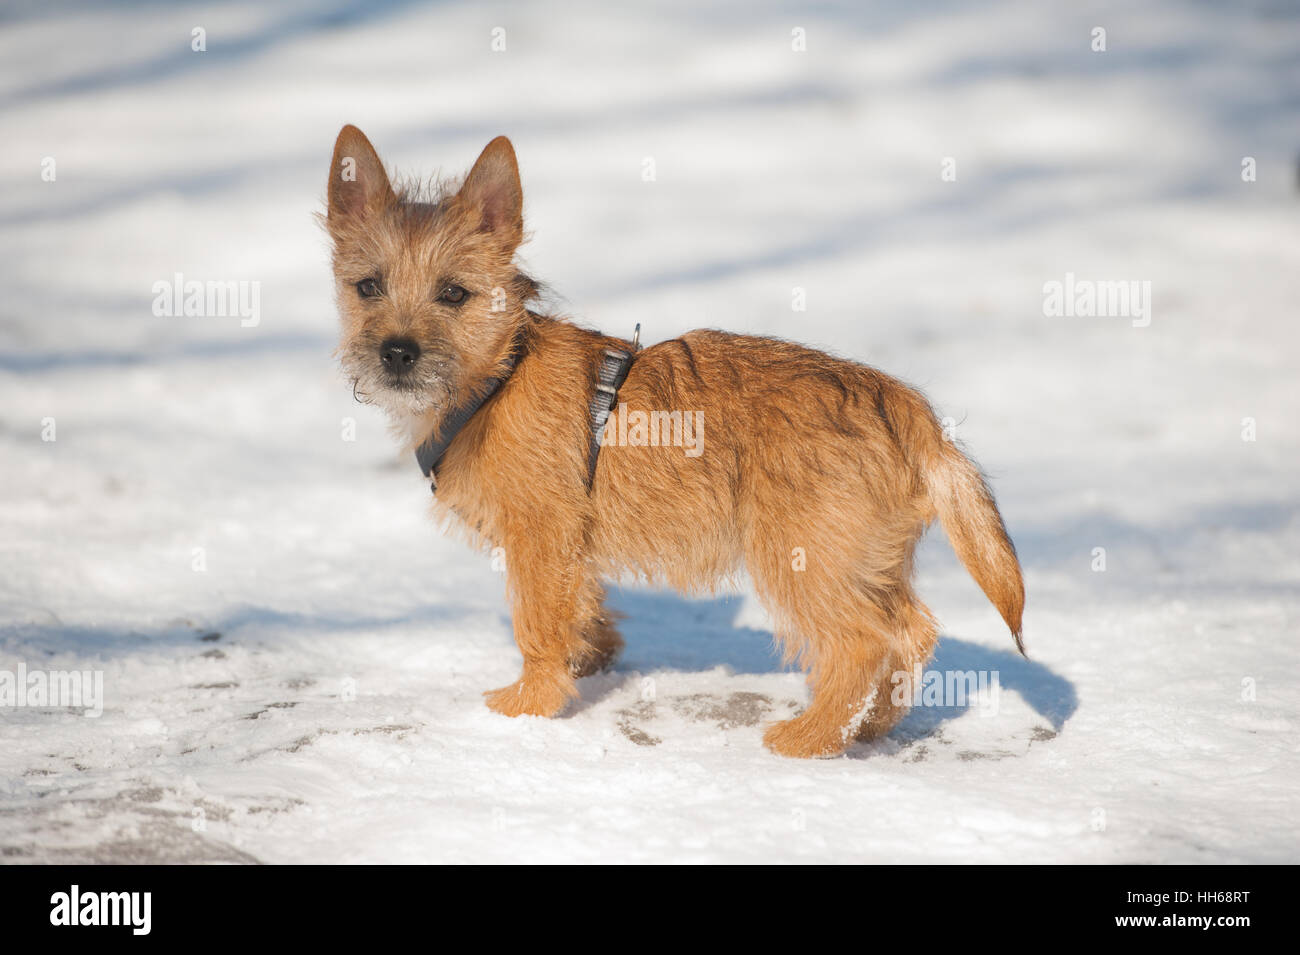 Good Cairn Terrier Ball Adorable Dog - cute-cairn-terrier-puppy-playing-outside-in-cold-winter-snow-young-HH68RT  Image_104270  .jpg